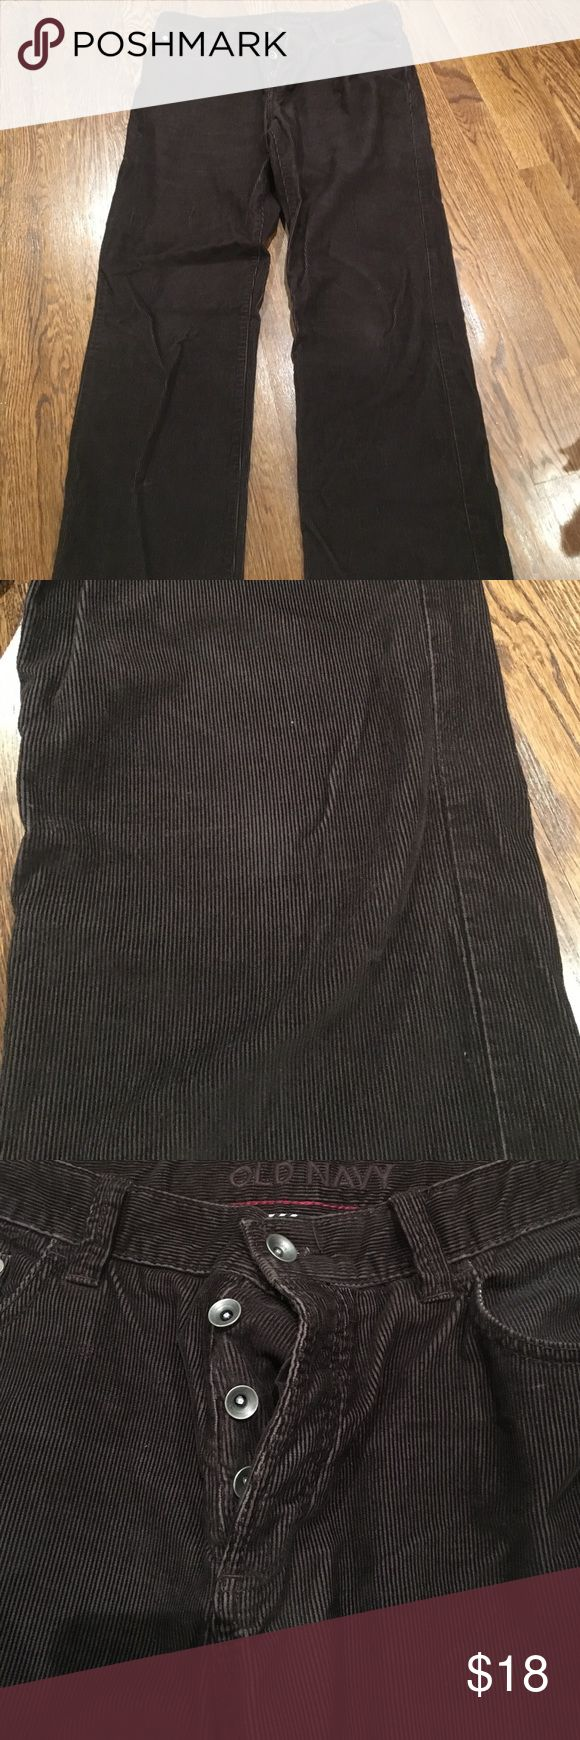 """Old navy men's corduroy pants Button fly. A small """"wear"""" spot on leg as seen in pic 2.  Straight cut. Machine washable Old Navy Pants Corduroy"""